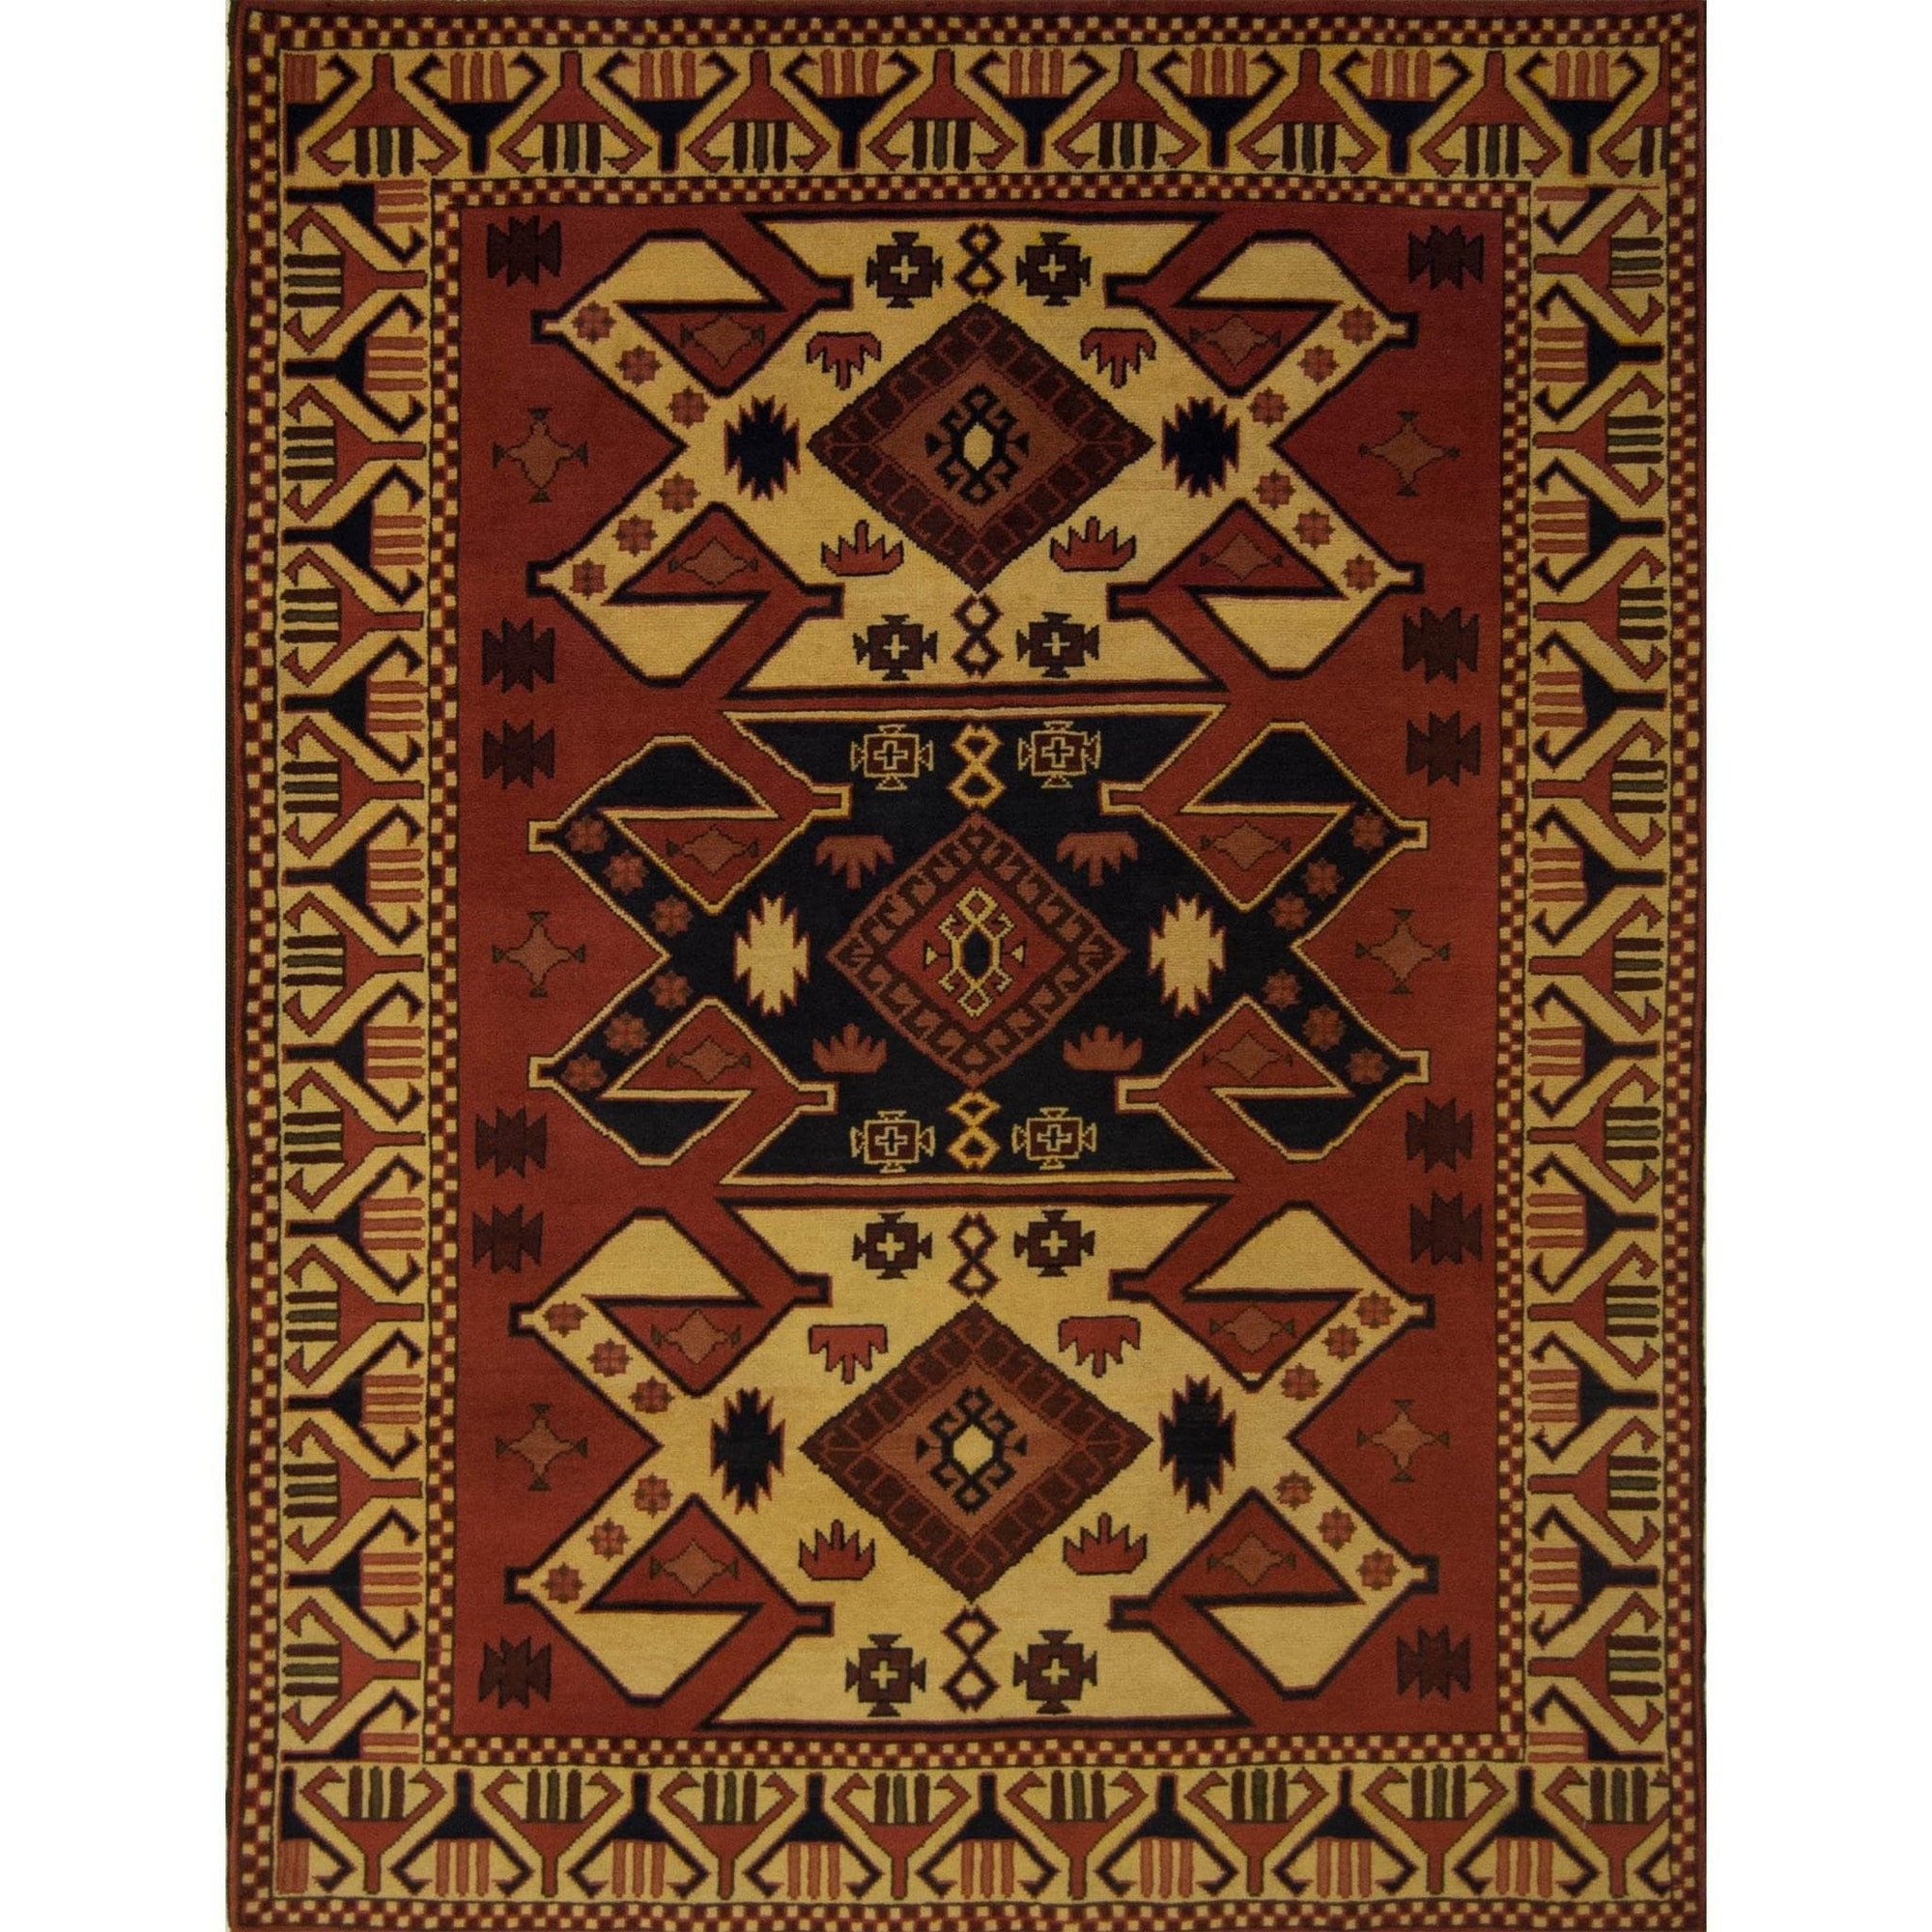 Kargai Persian-Rug | House-of-Haghi | NewMarket | Auckland | NZ | Handmade Persian Rugs | Hand Knotted Persian Rugs